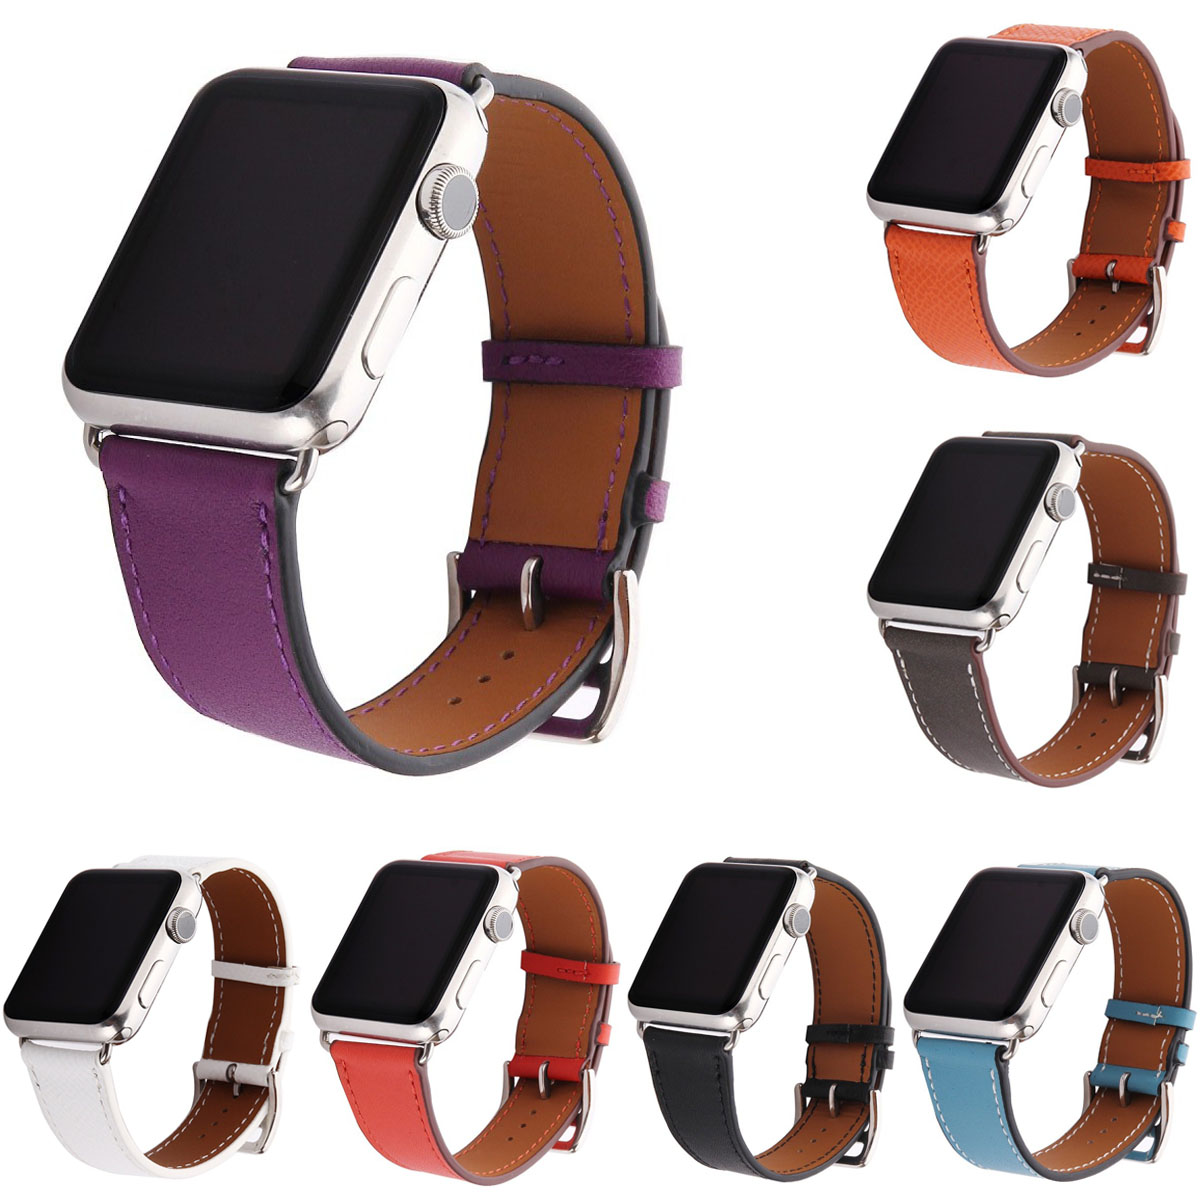 Luxury Litchi Real Genuine Leather Watch Band for Series 1 2 3 Single Tour Strap for Apple Watch iWatch Bracelet 42mm 38mm istrap black brown red france genuine calf leather single tour bracelet watch strap for iwatch apple watch band 38mm 42mm